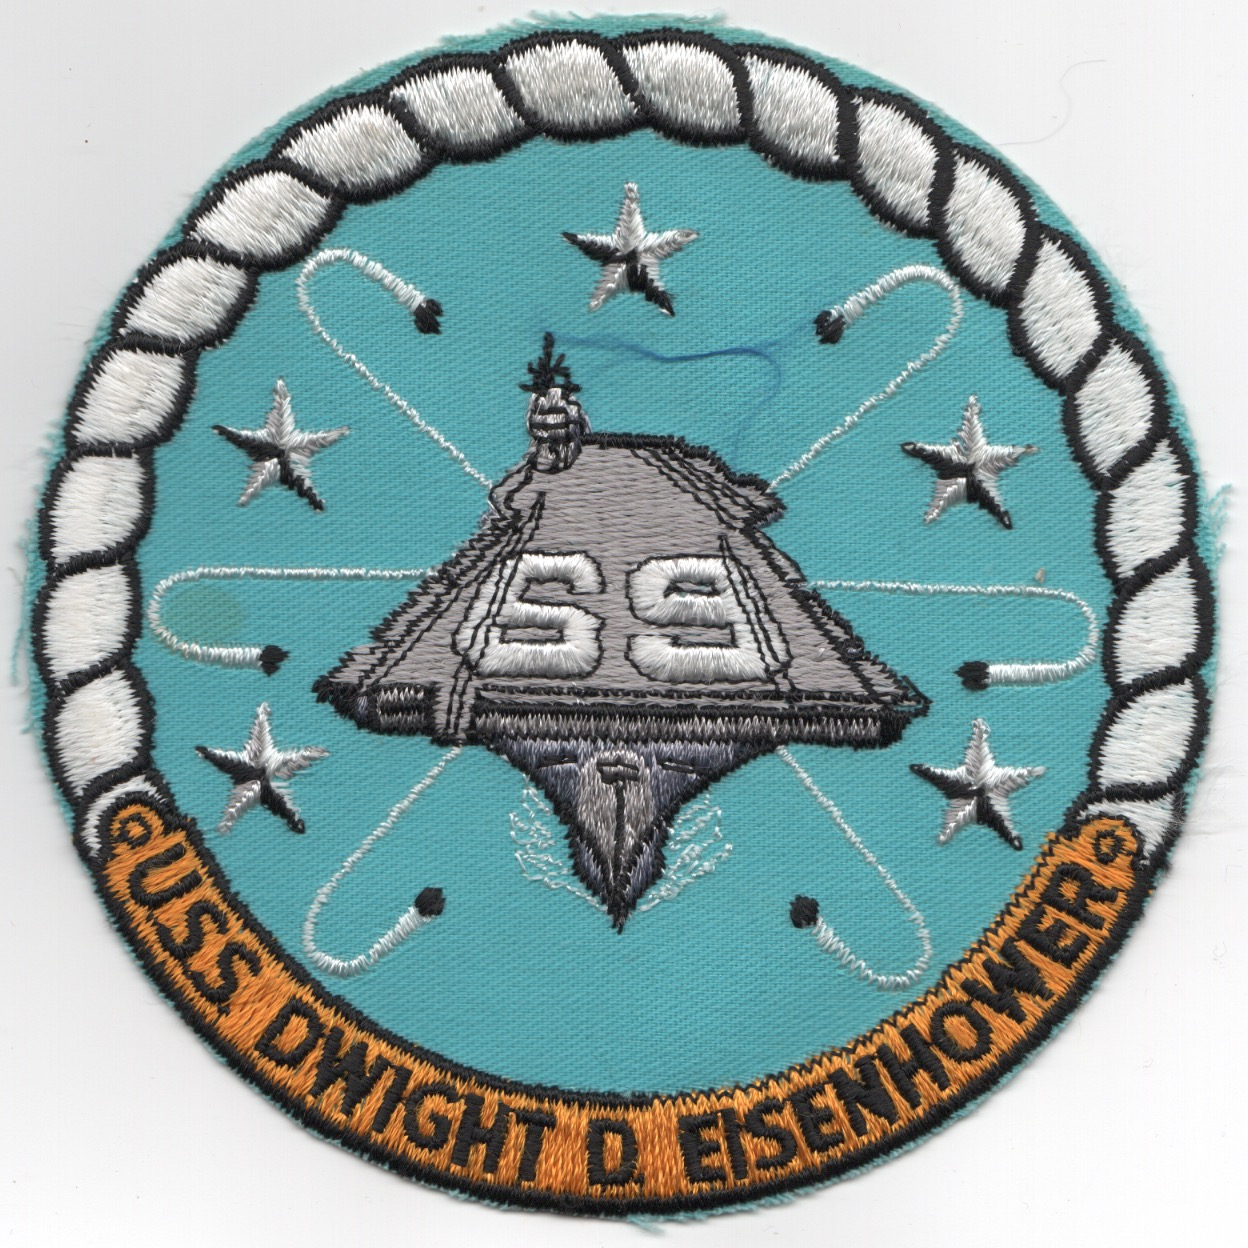 473) CVN-69 Ship Patch (Large)